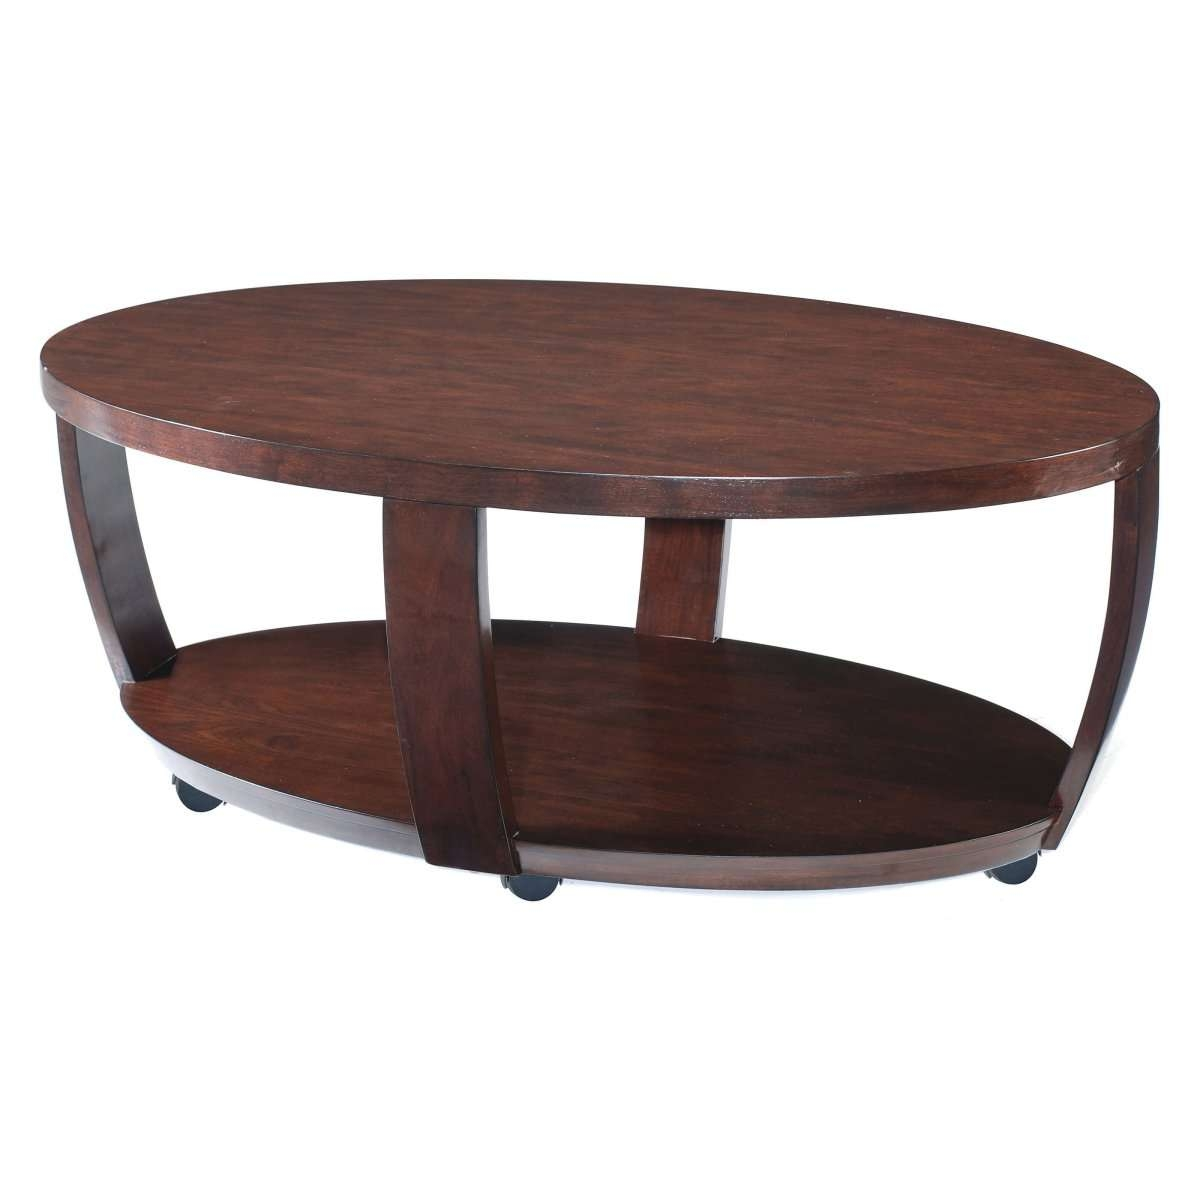 Coffee Tables : Ashley Furniture Coffee Table Set Mirrored Tray Regarding Popular Oblong Coffee Tables (View 4 of 20)